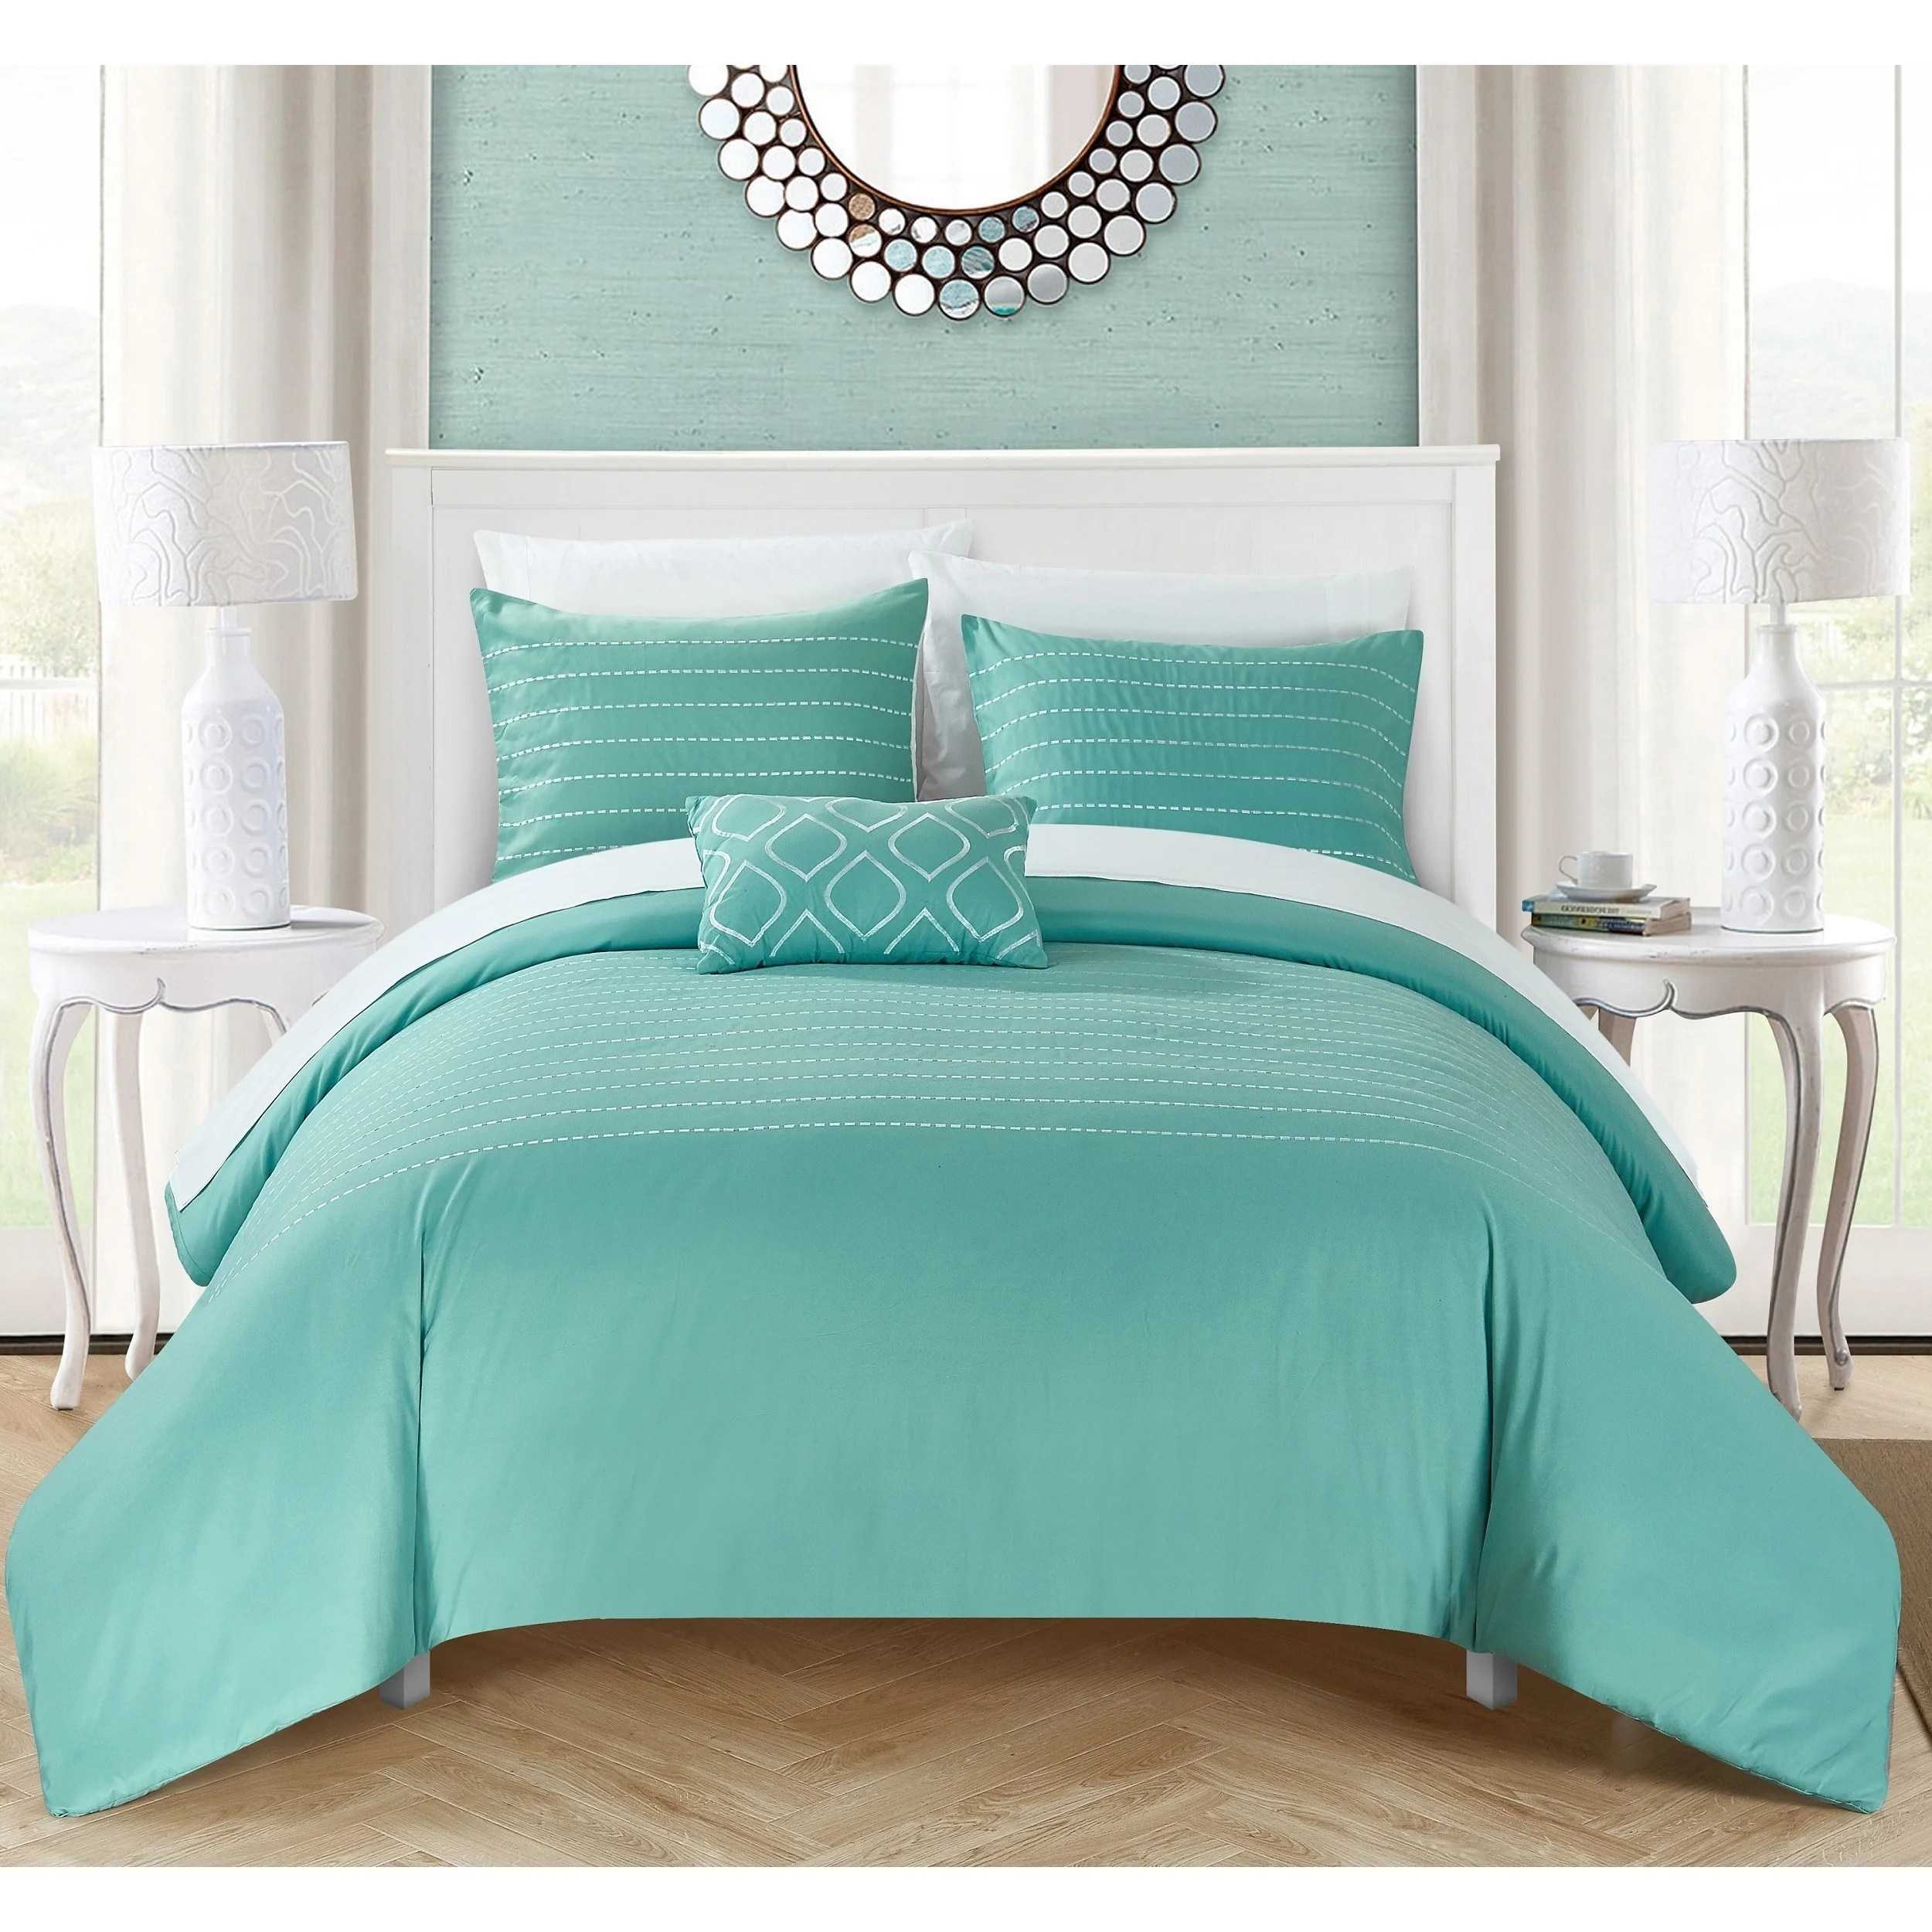 Shop Chic Home Kingston 8-Piece Turquoise Bed in a Bag ... on Teenager:_L_Breseofm= Bedroom Ideas  id=89537